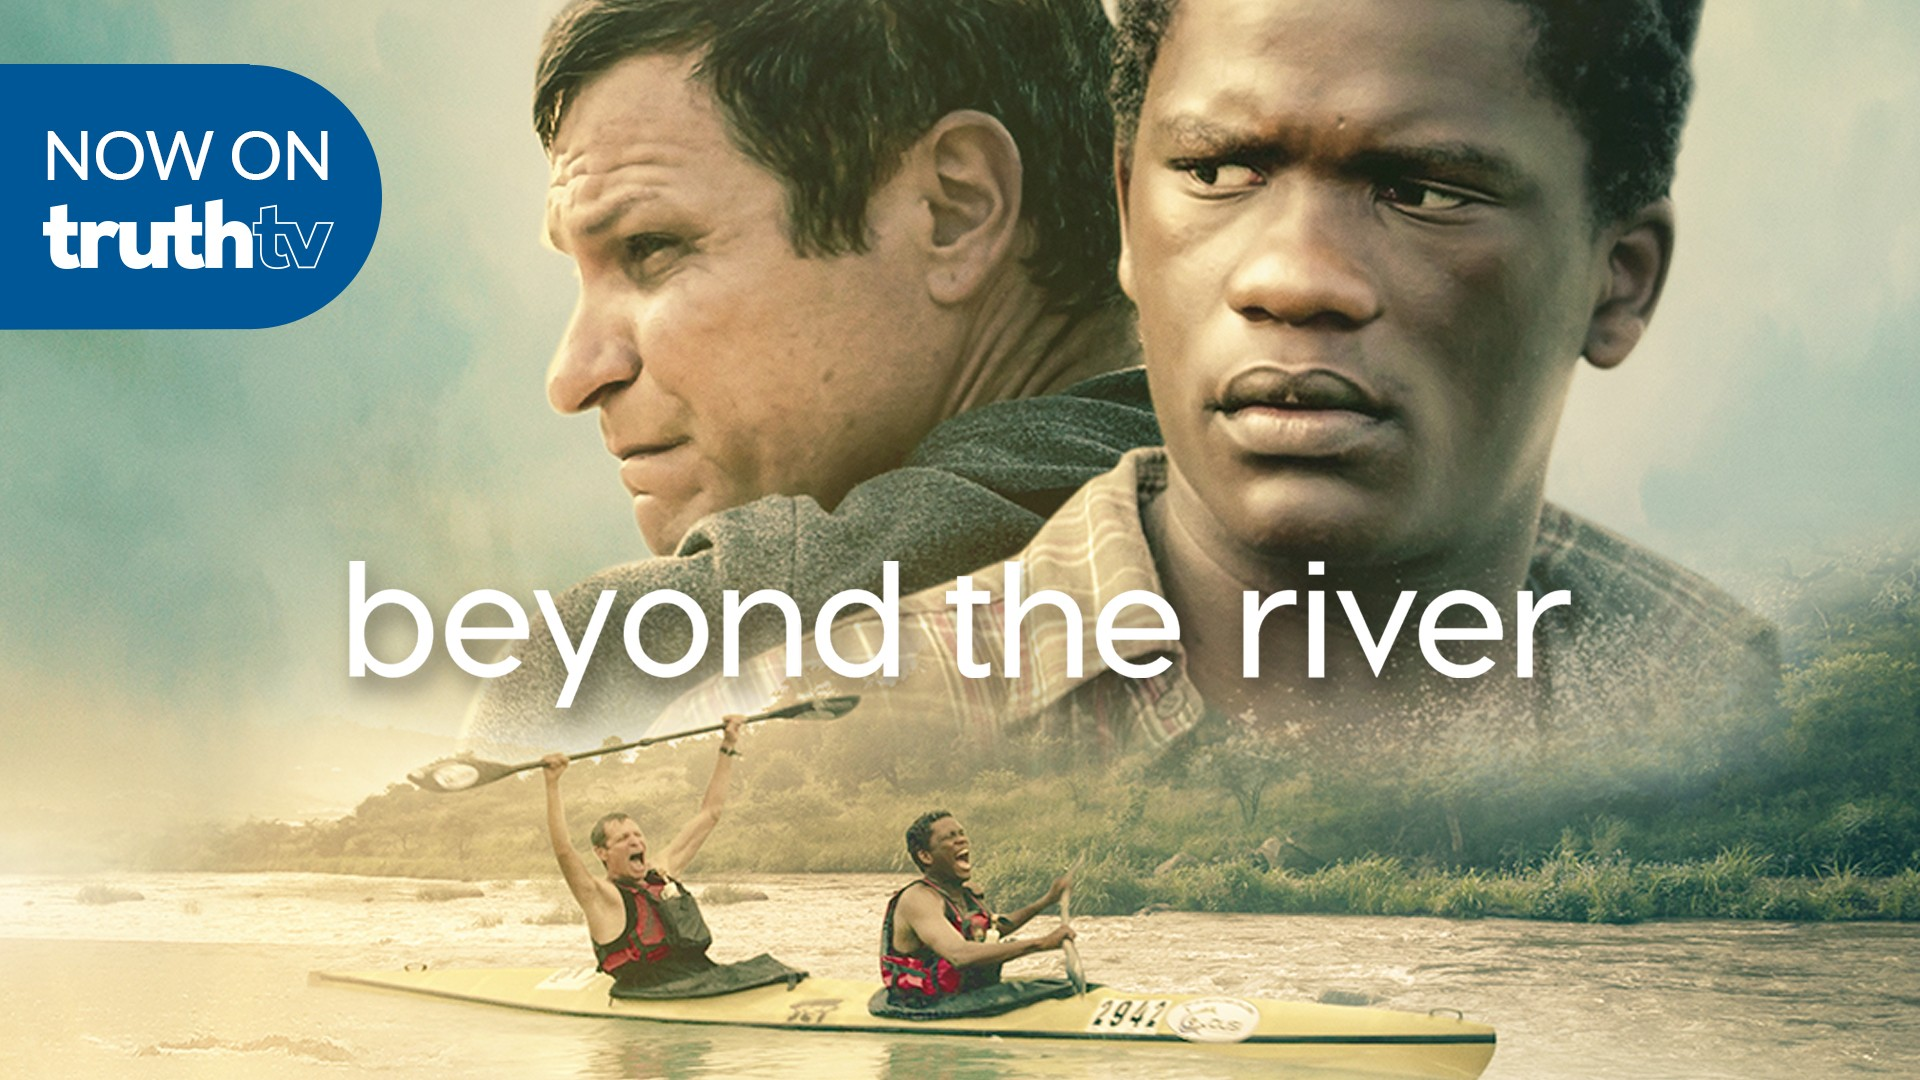 truthtv beyond the river now available 1920 x 1080 poster 01